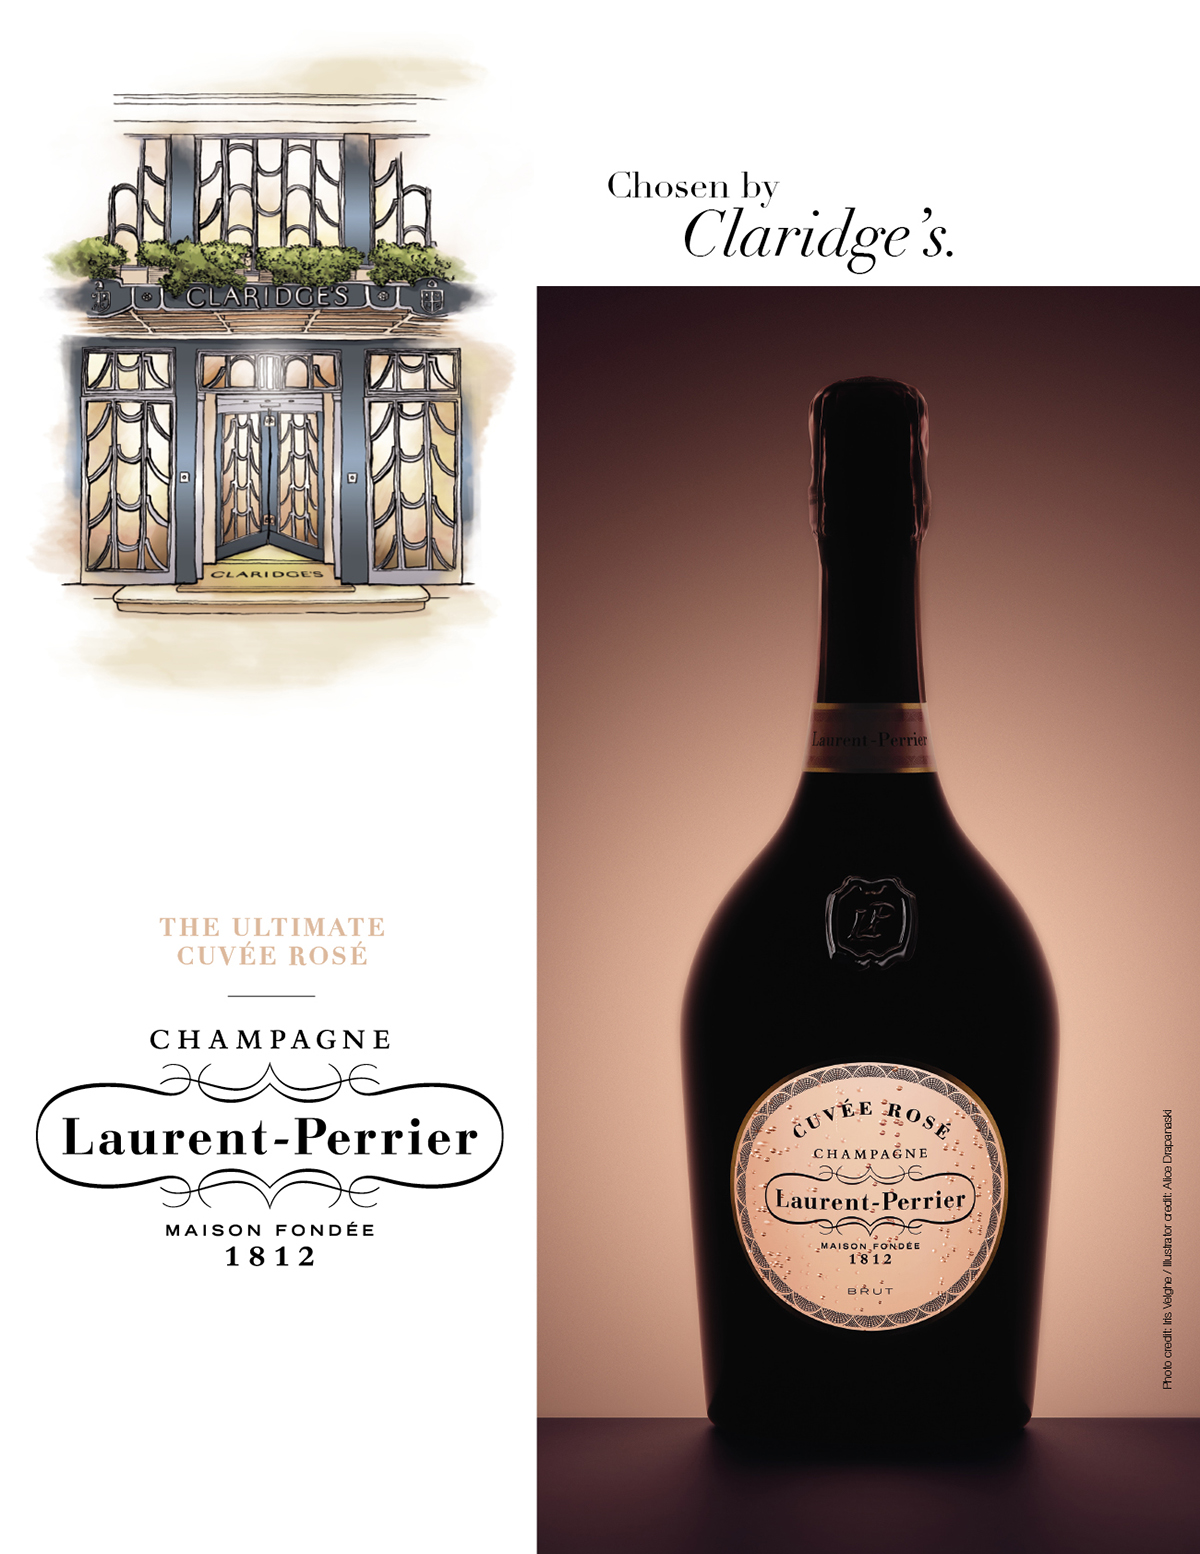 laurent-perrier-champagne-publicite-marketing-ads-cuvee-rose-tour-argent-meurice-gstaad-palace-ritz-dorchester-gavroche-agence-publicis-conseil-5